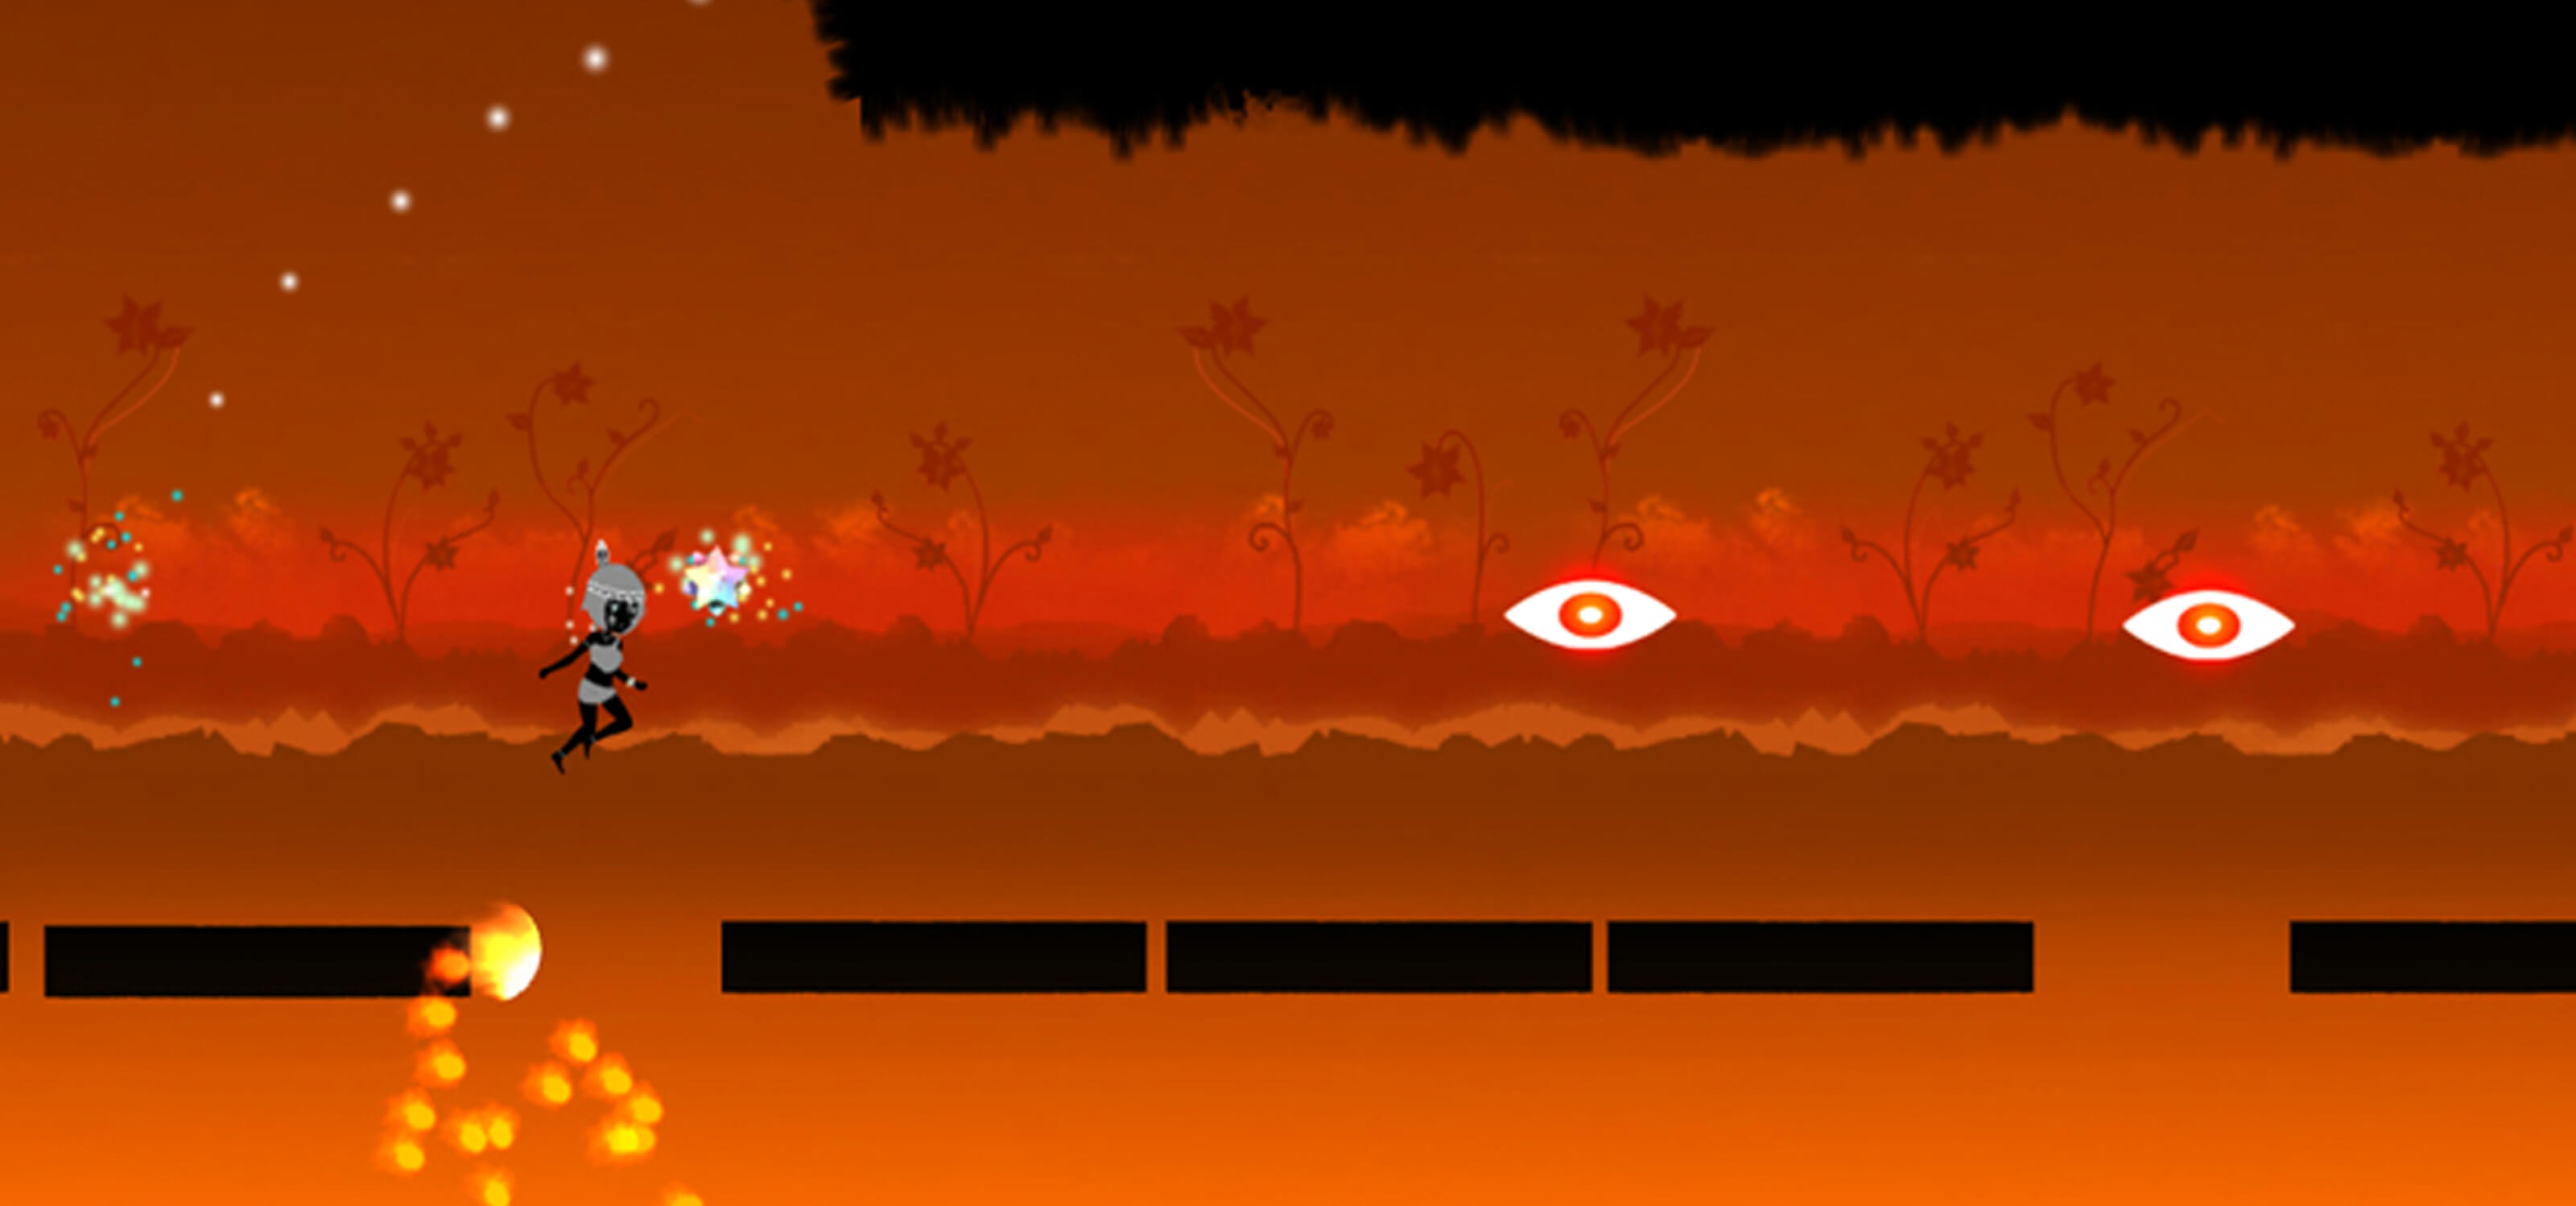 Screenshot from Iris, the 2D character hops onto a platform in a fiery level as two glowing eyes hover in the air ahead